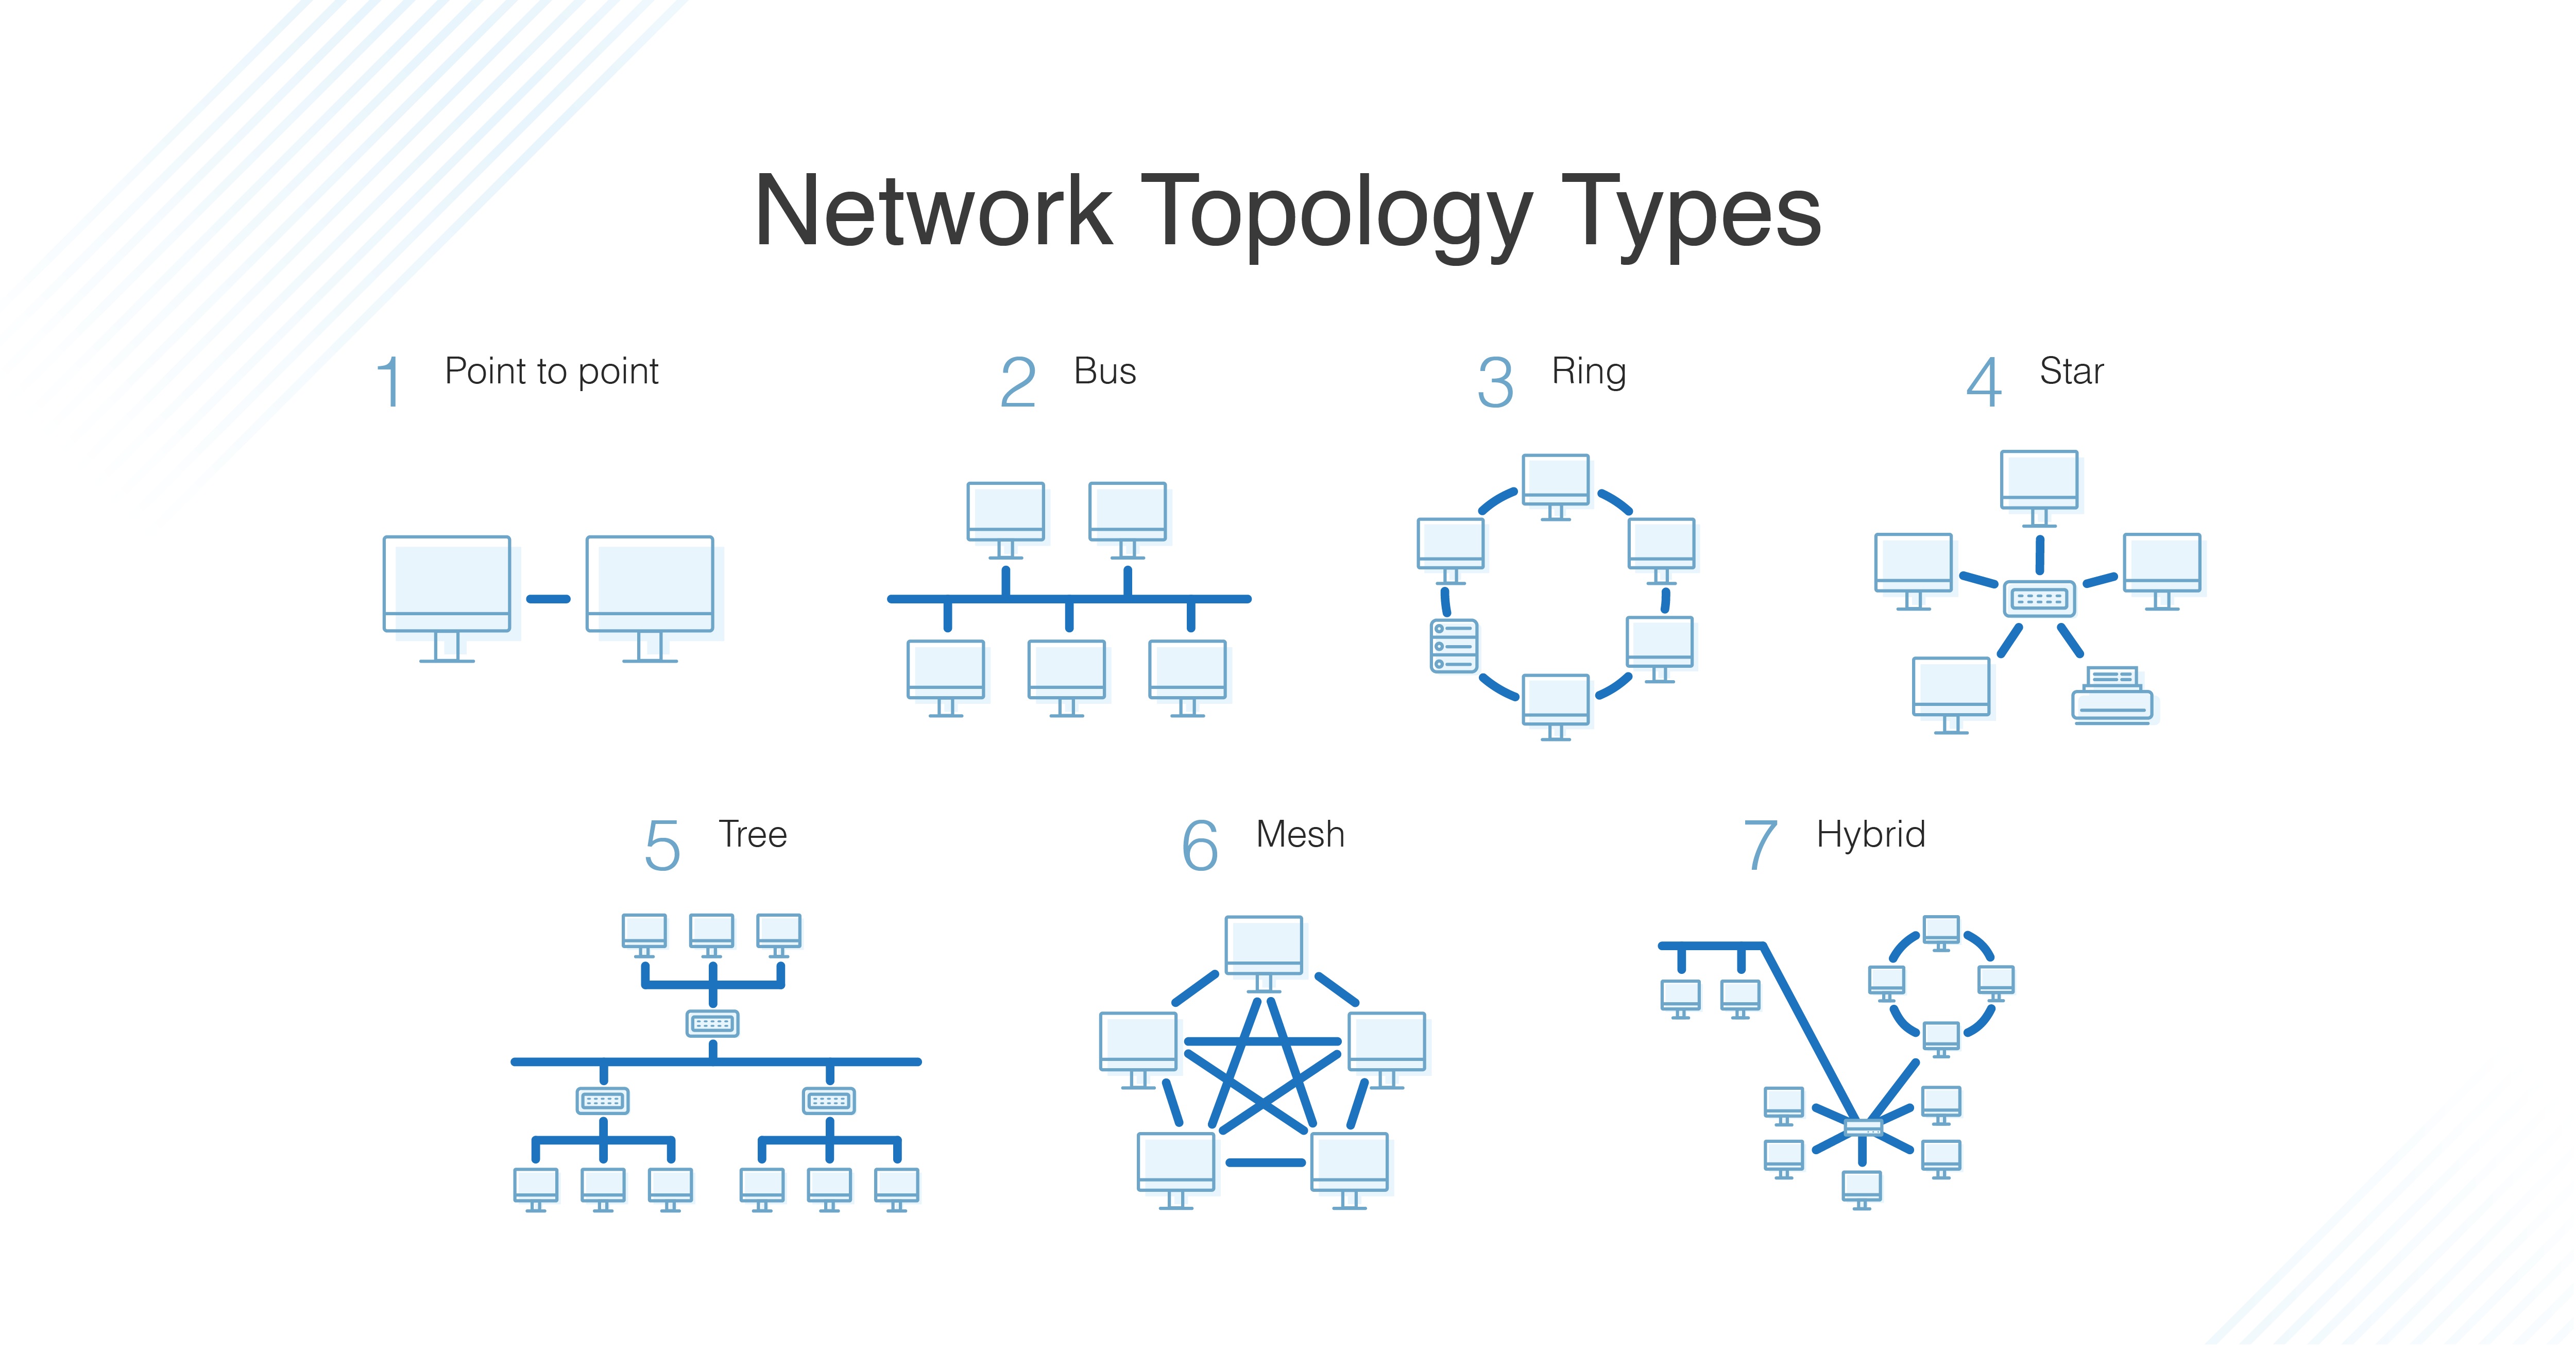 Star Topology For Small Business